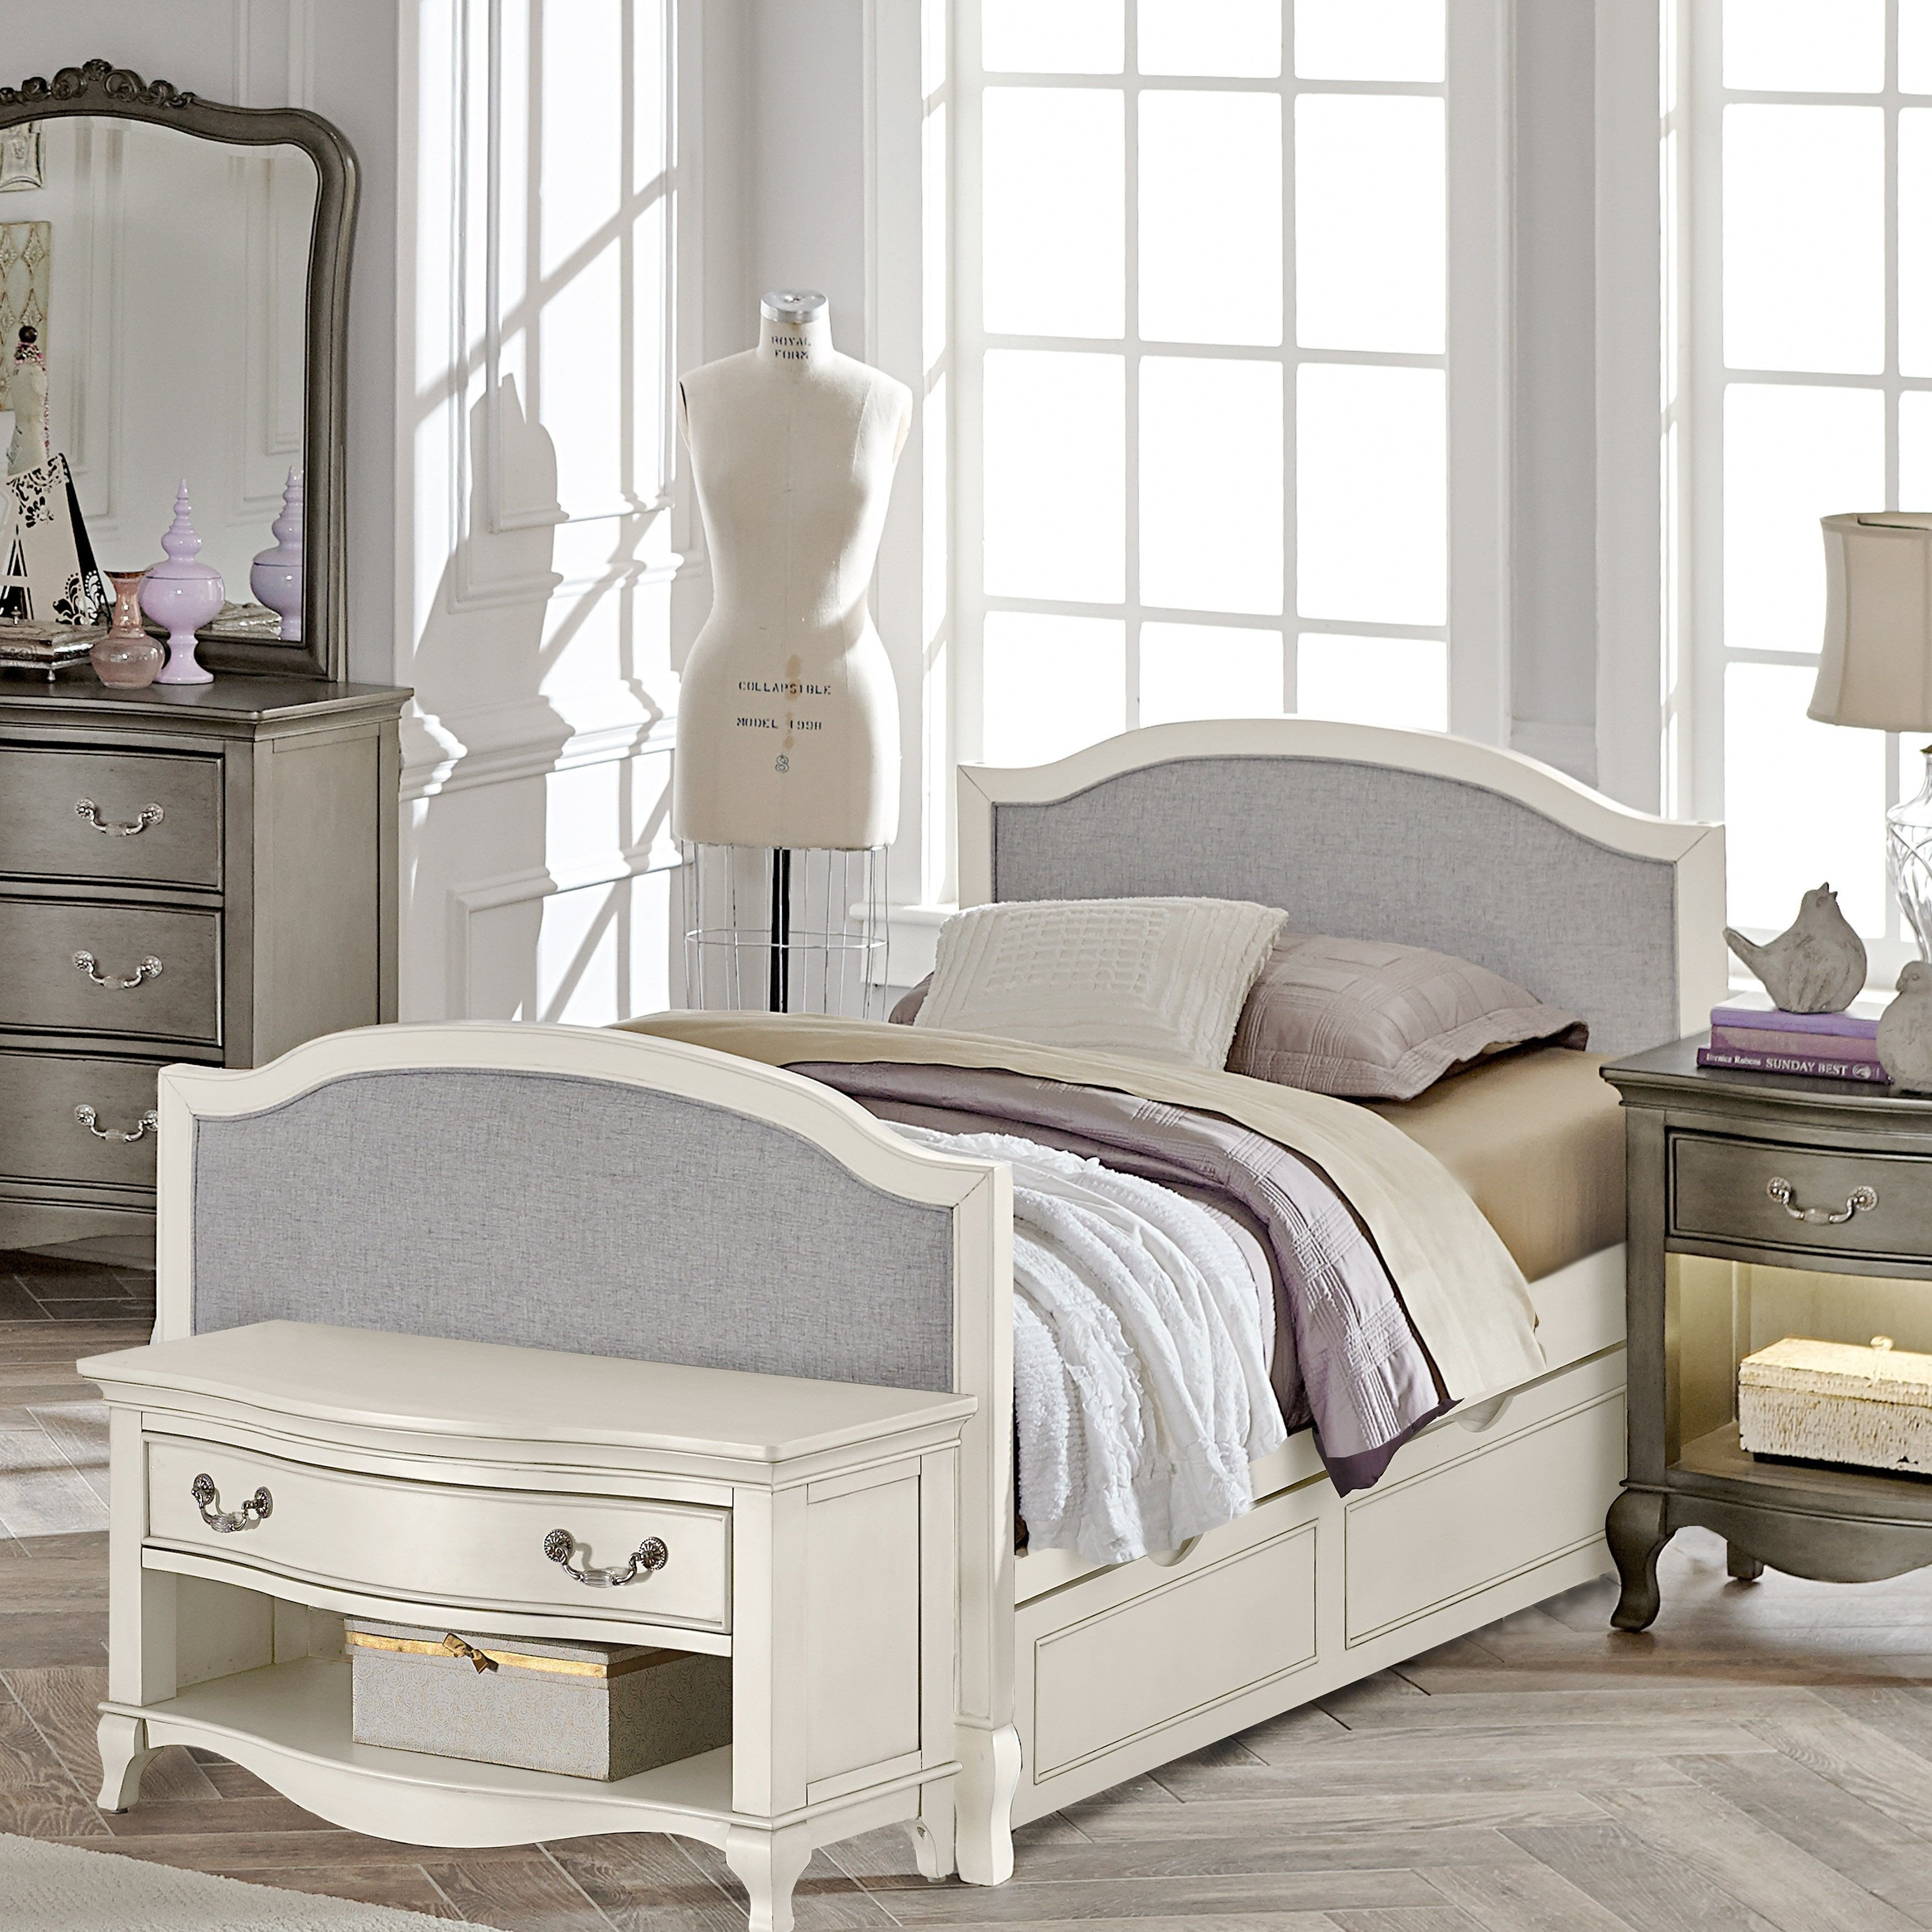 Twin Bedroom Set for Sale Fresh Kensington Victoria Antique White Twin Size Upholstered